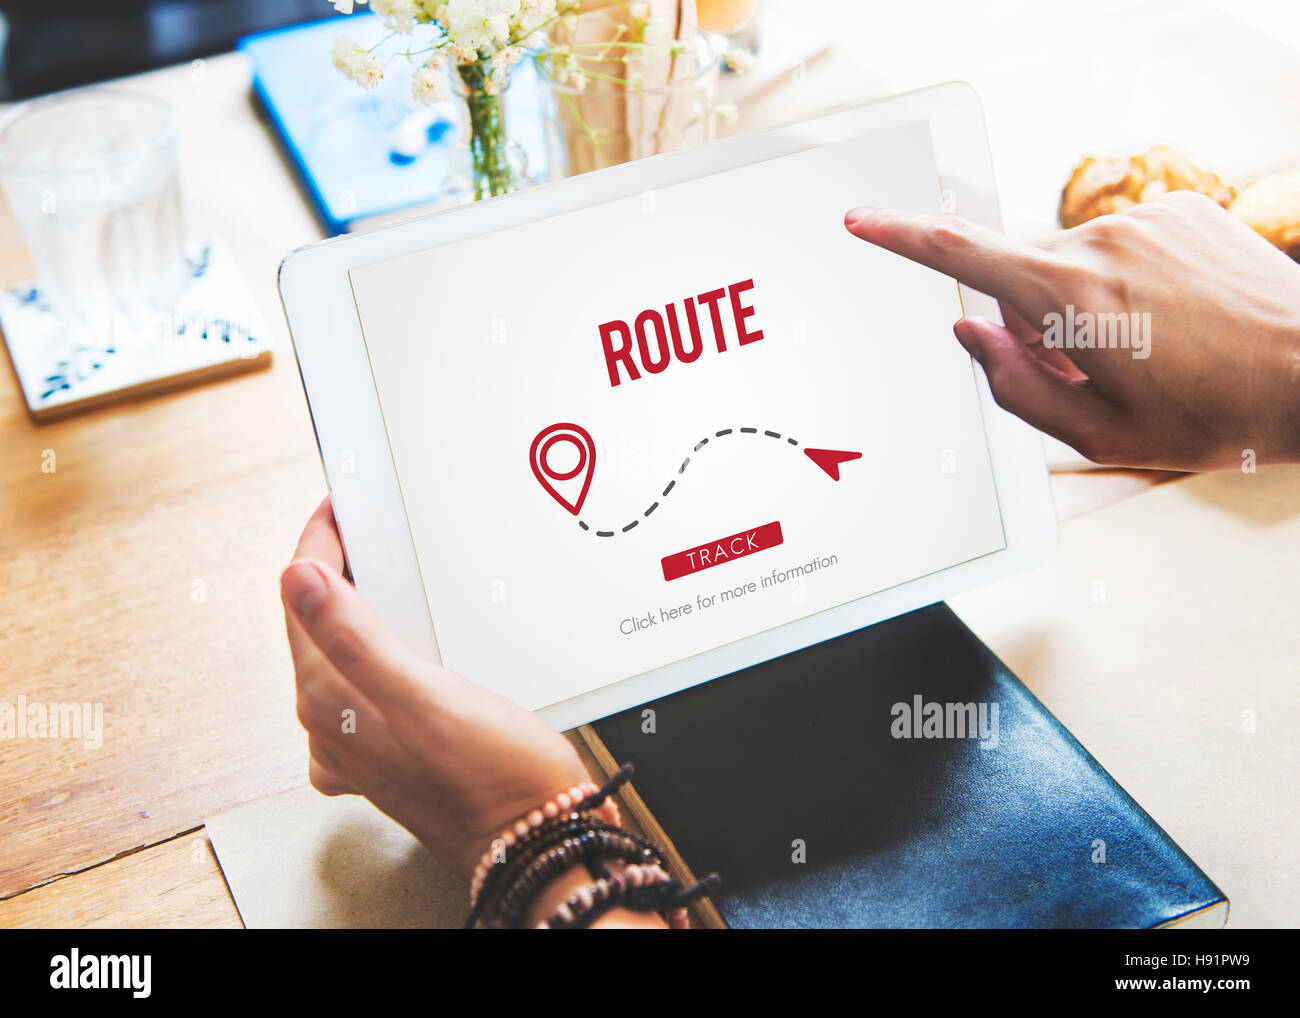 Route Navigate Location Planning Transportation Concept - Stock Image